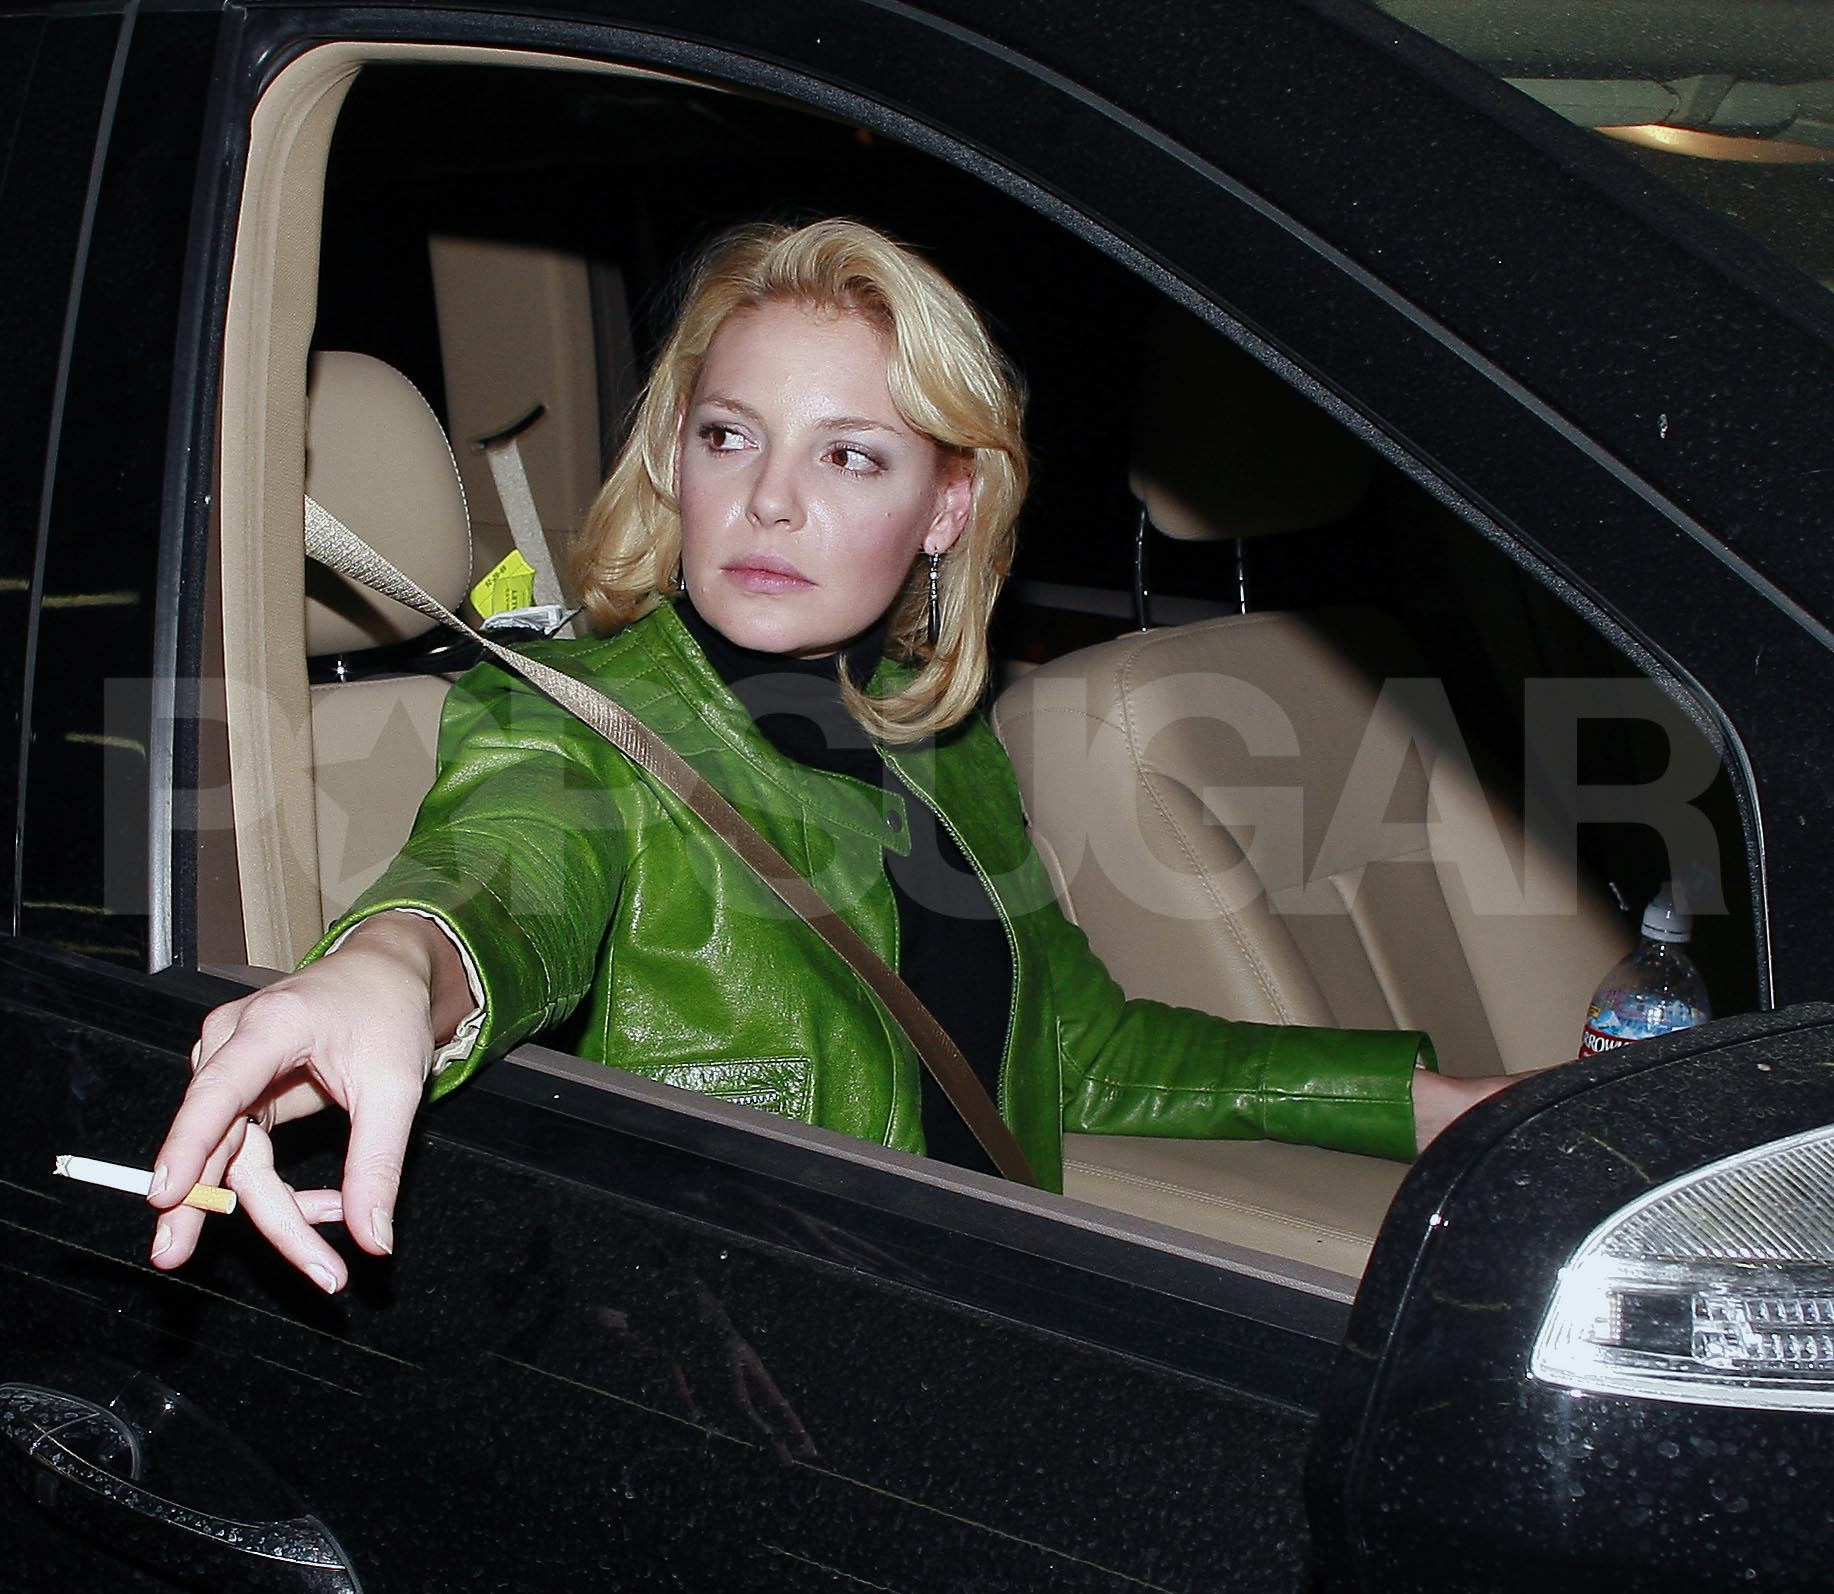 Katherine Heigl smoking a cigarette (or weed)